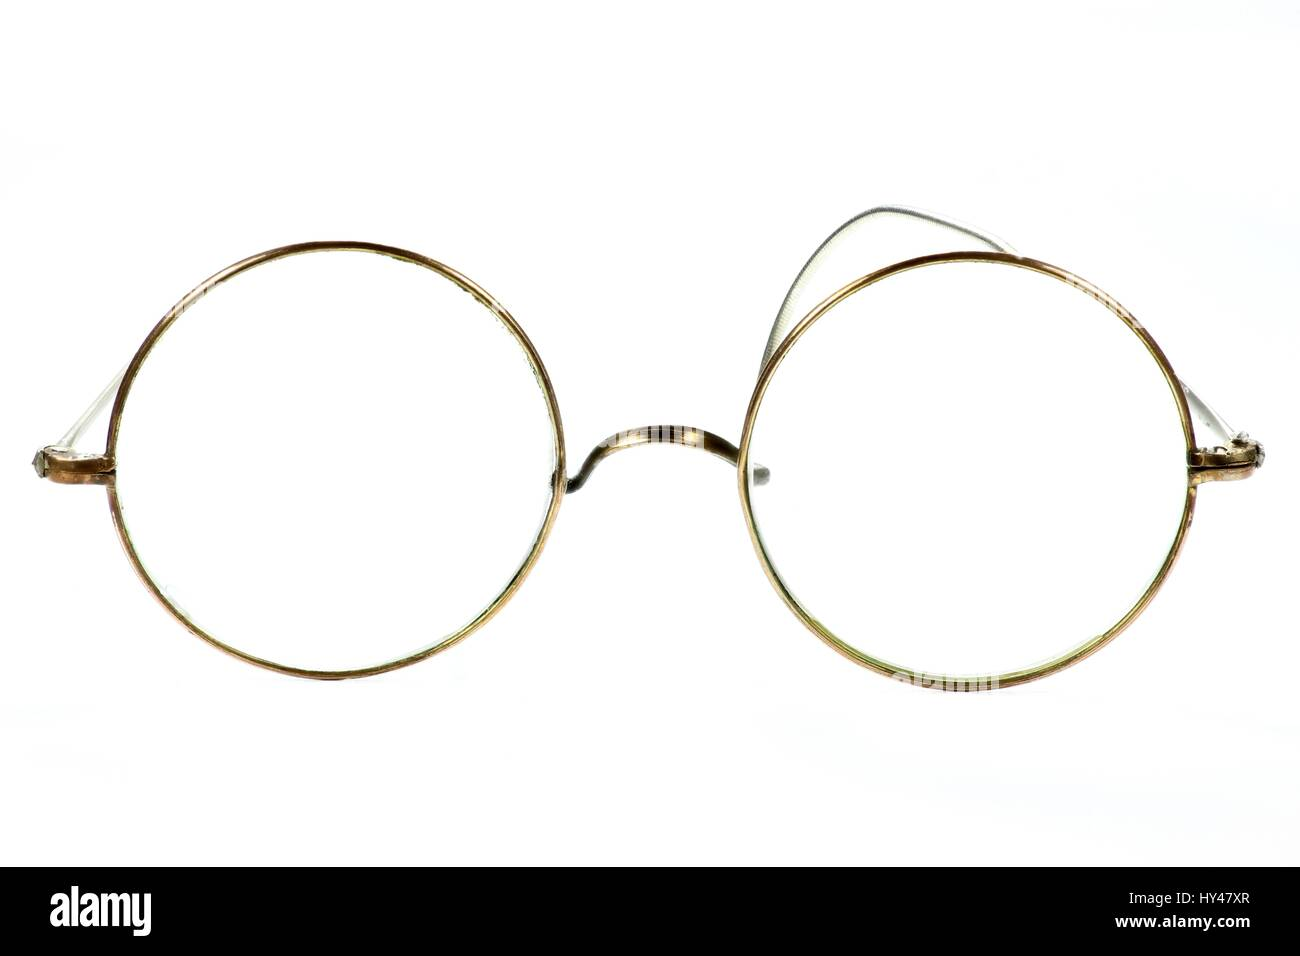 01ff33e92b5cc Round Spectacles Stock Photos   Round Spectacles Stock Images - Alamy